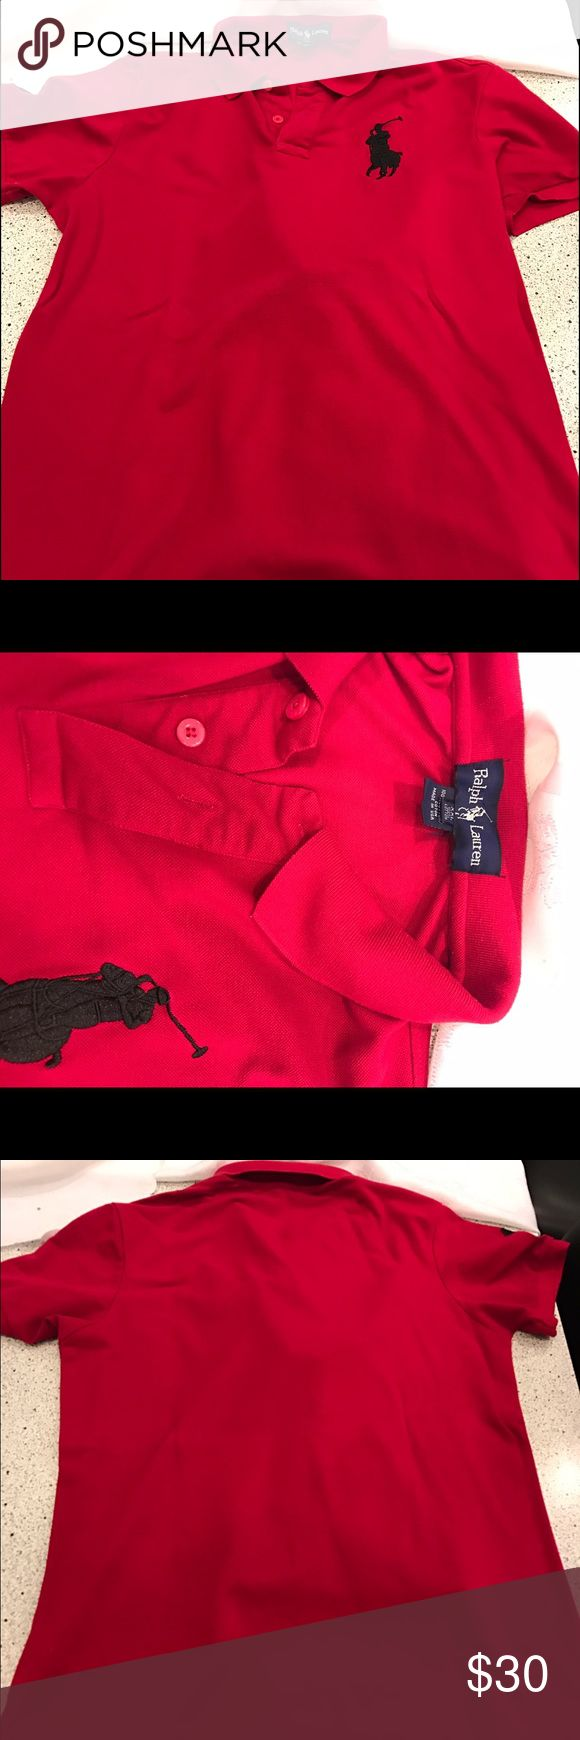 Men's polo by Ralph Lauren shirt Men's polo by Ralph Lauren red shirt with black big pony size XXL Polo by Ralph Lauren Shirts Polos